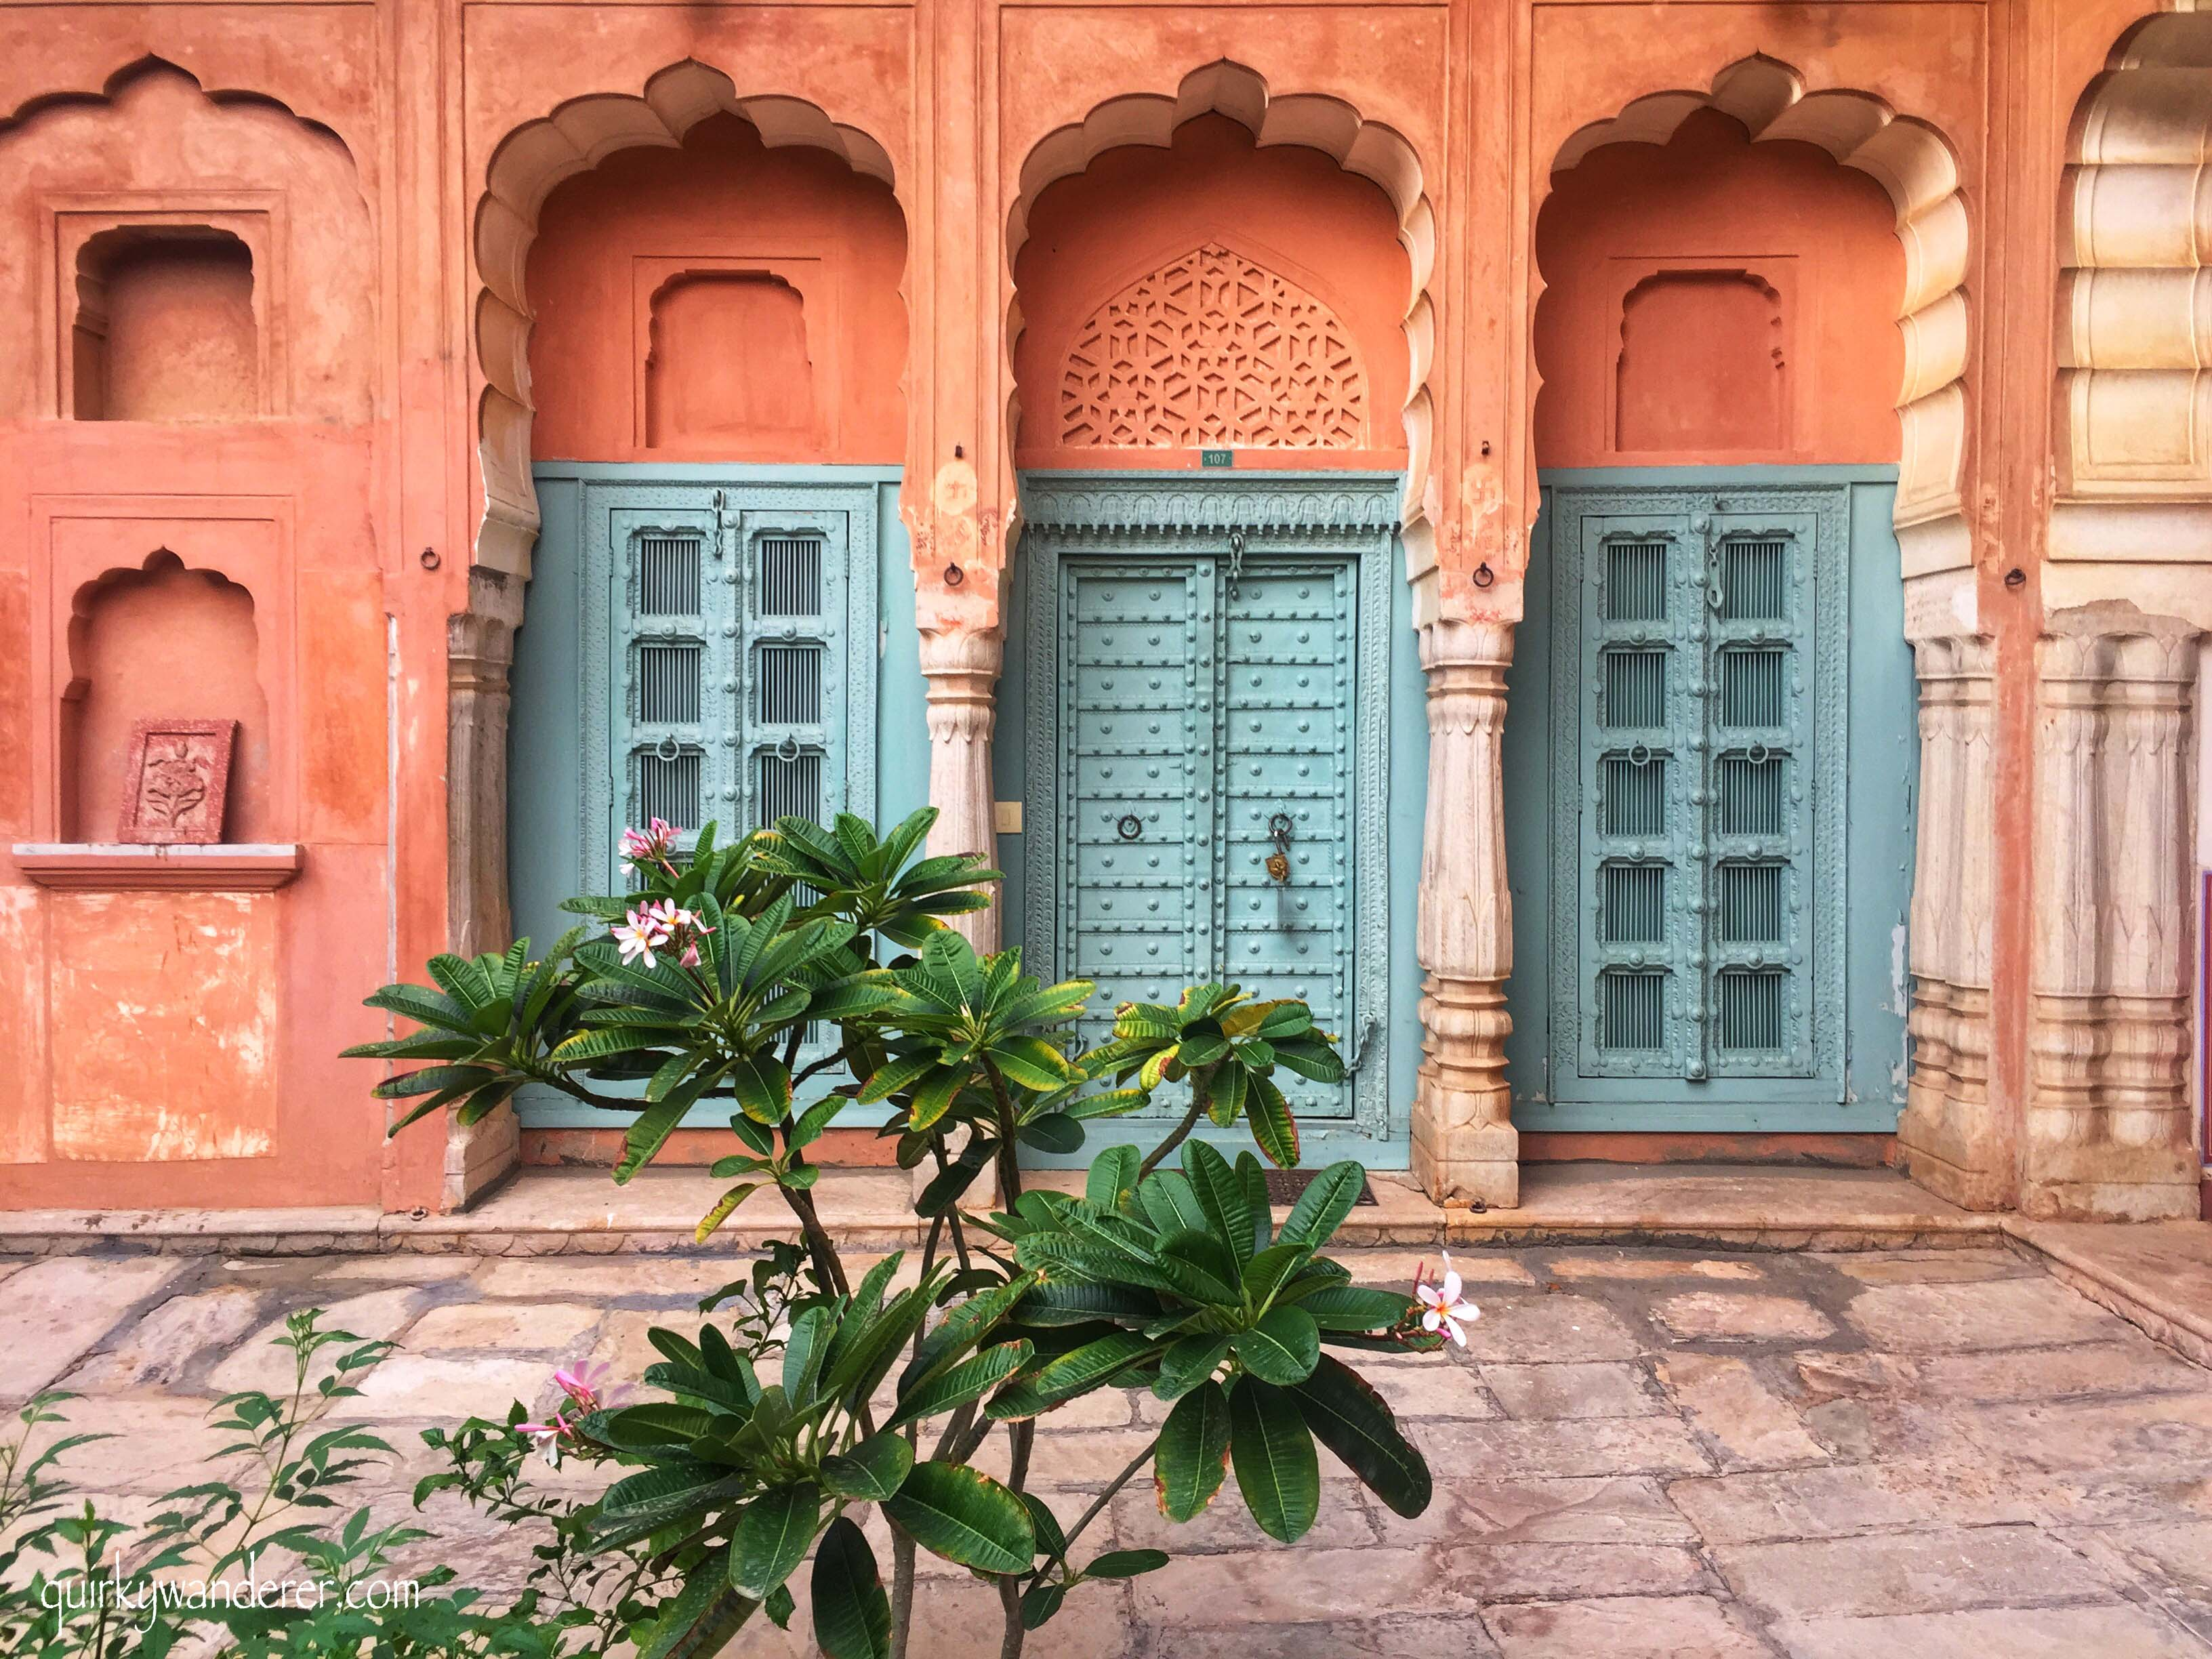 Where to stay in Shekhawati